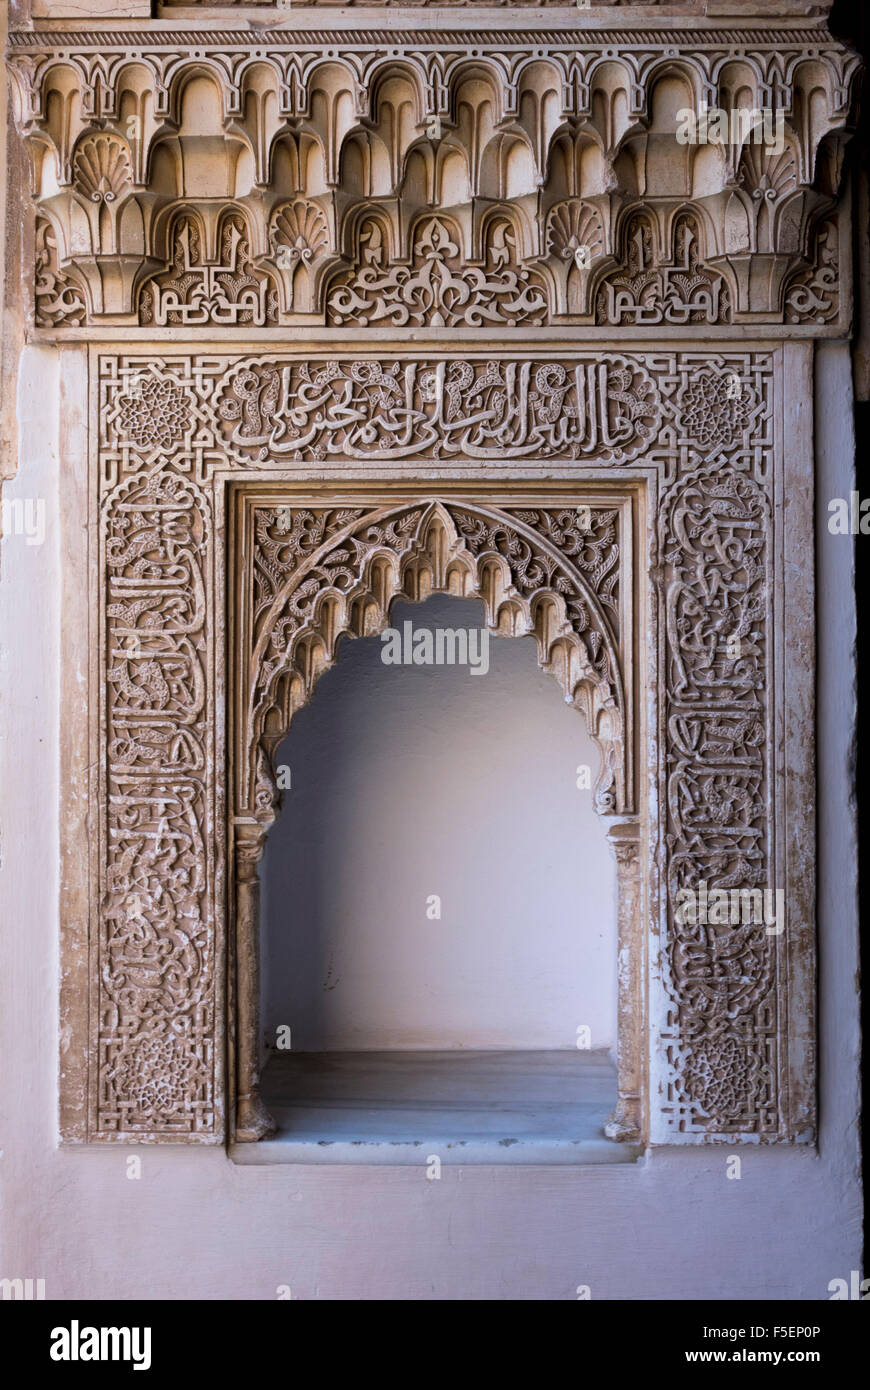 Wall niche with ornate carved arch in courtyard of Alhambra palace, Granada, Spain Stock Photo